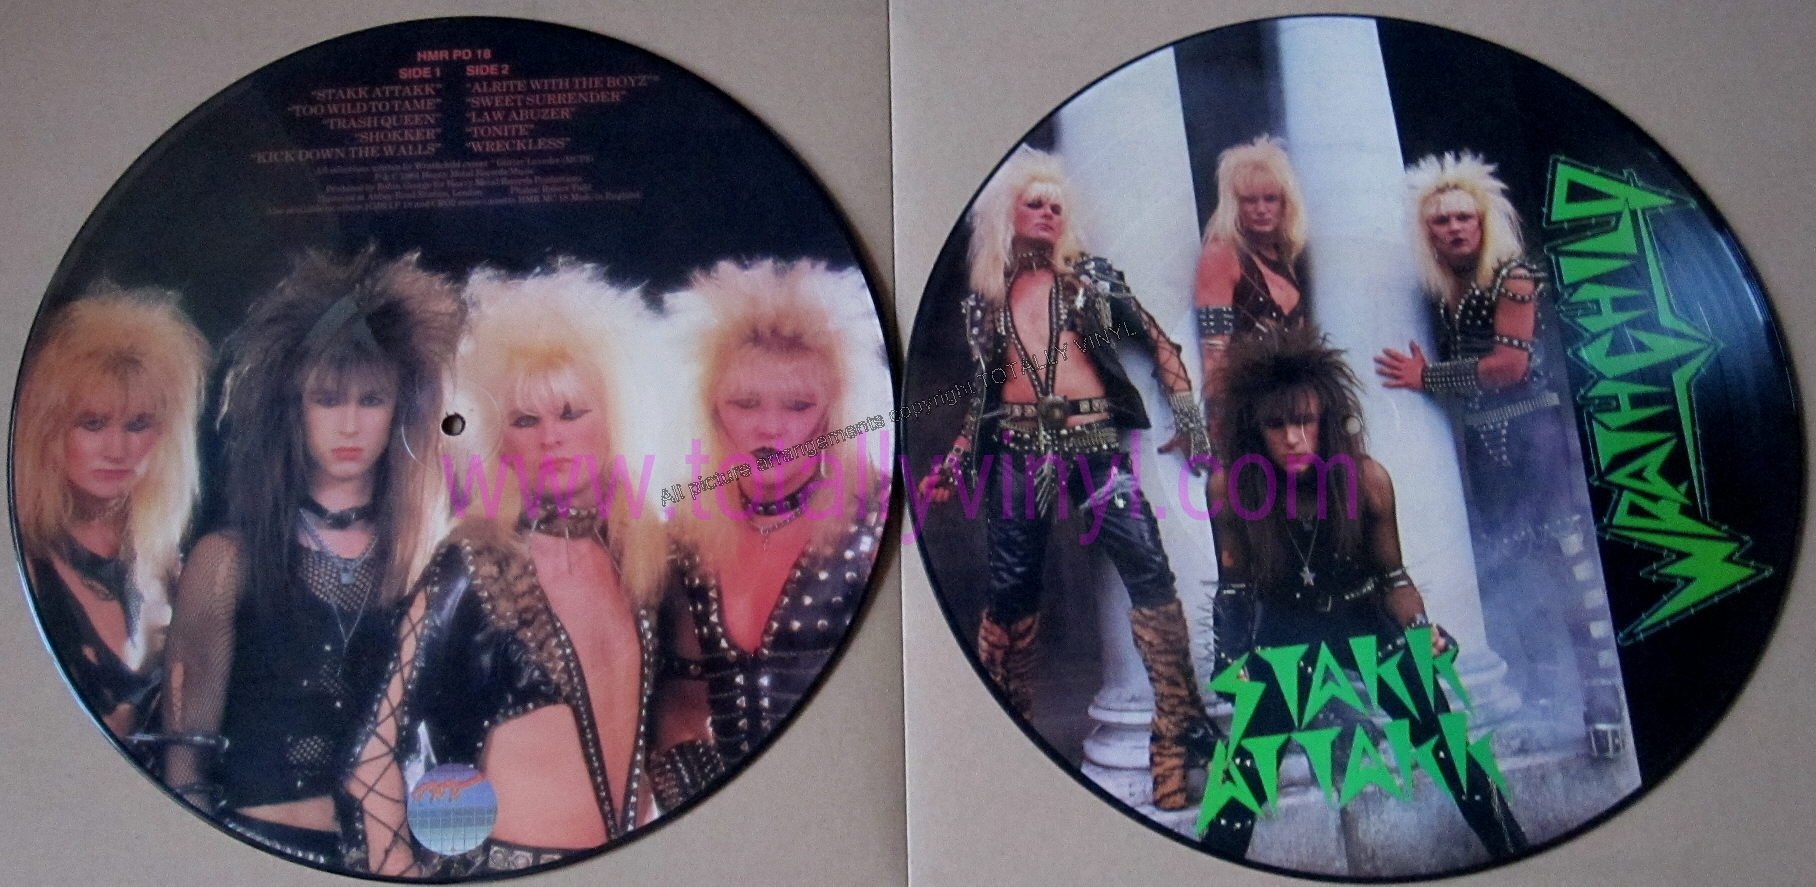 Totally Vinyl Records Wrathchild Stakk Attakk Lp